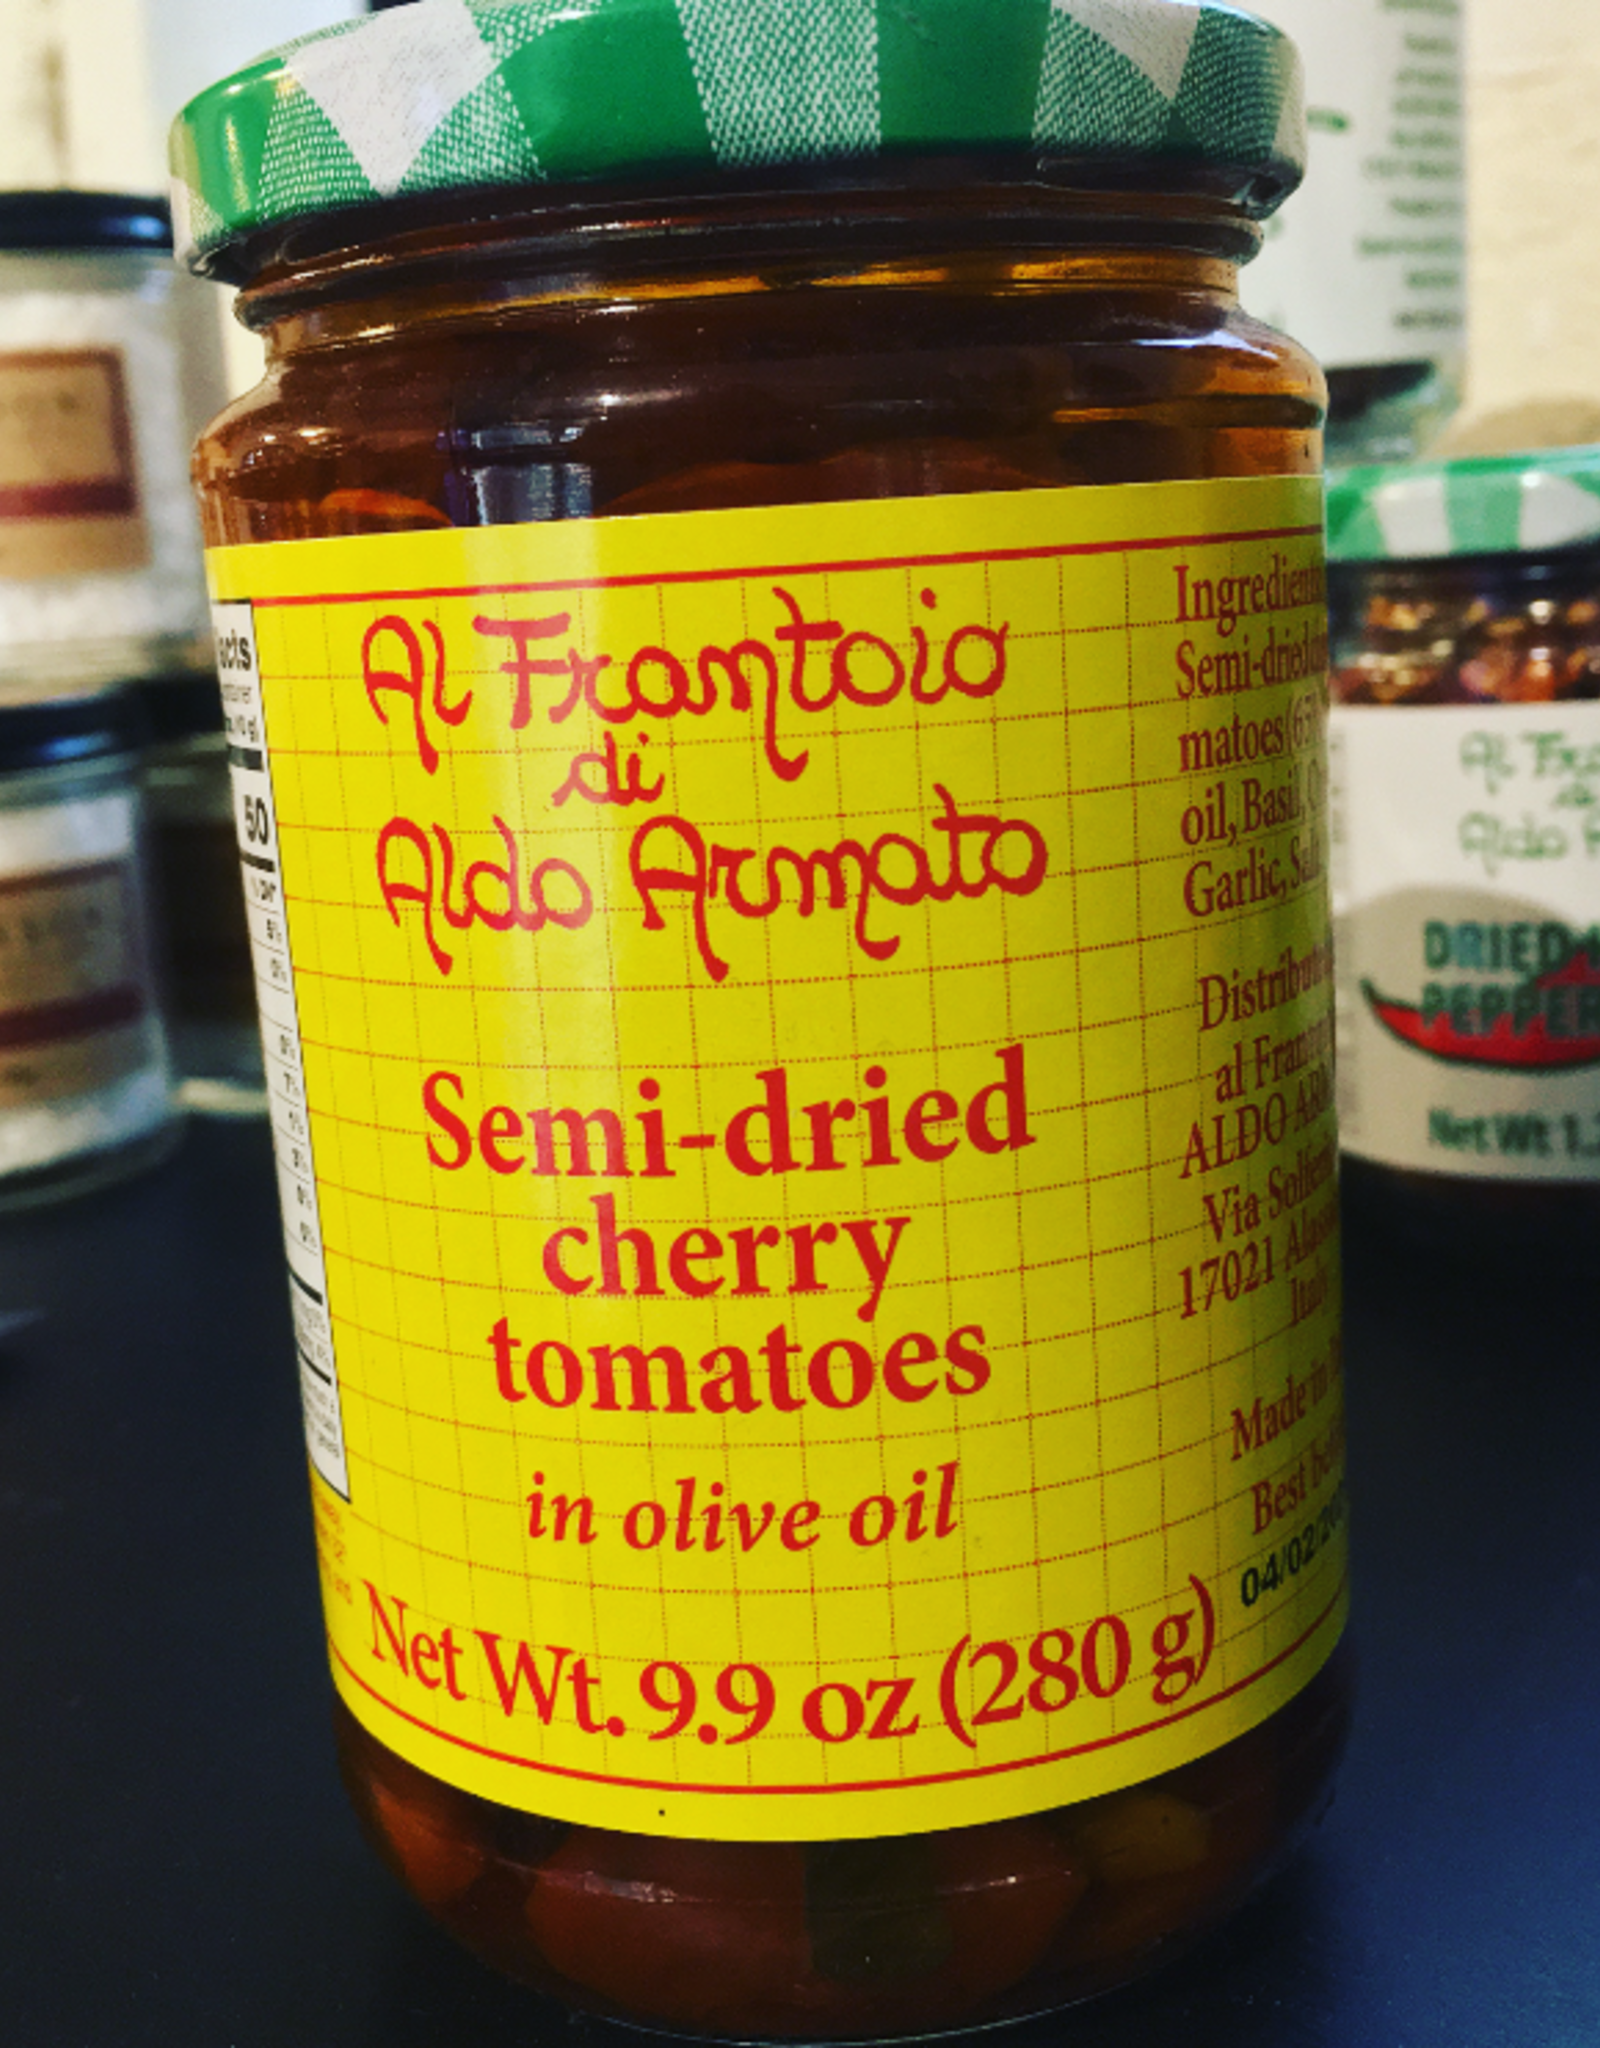 Aldo Armato Semi-dried Cherry Tomatoes